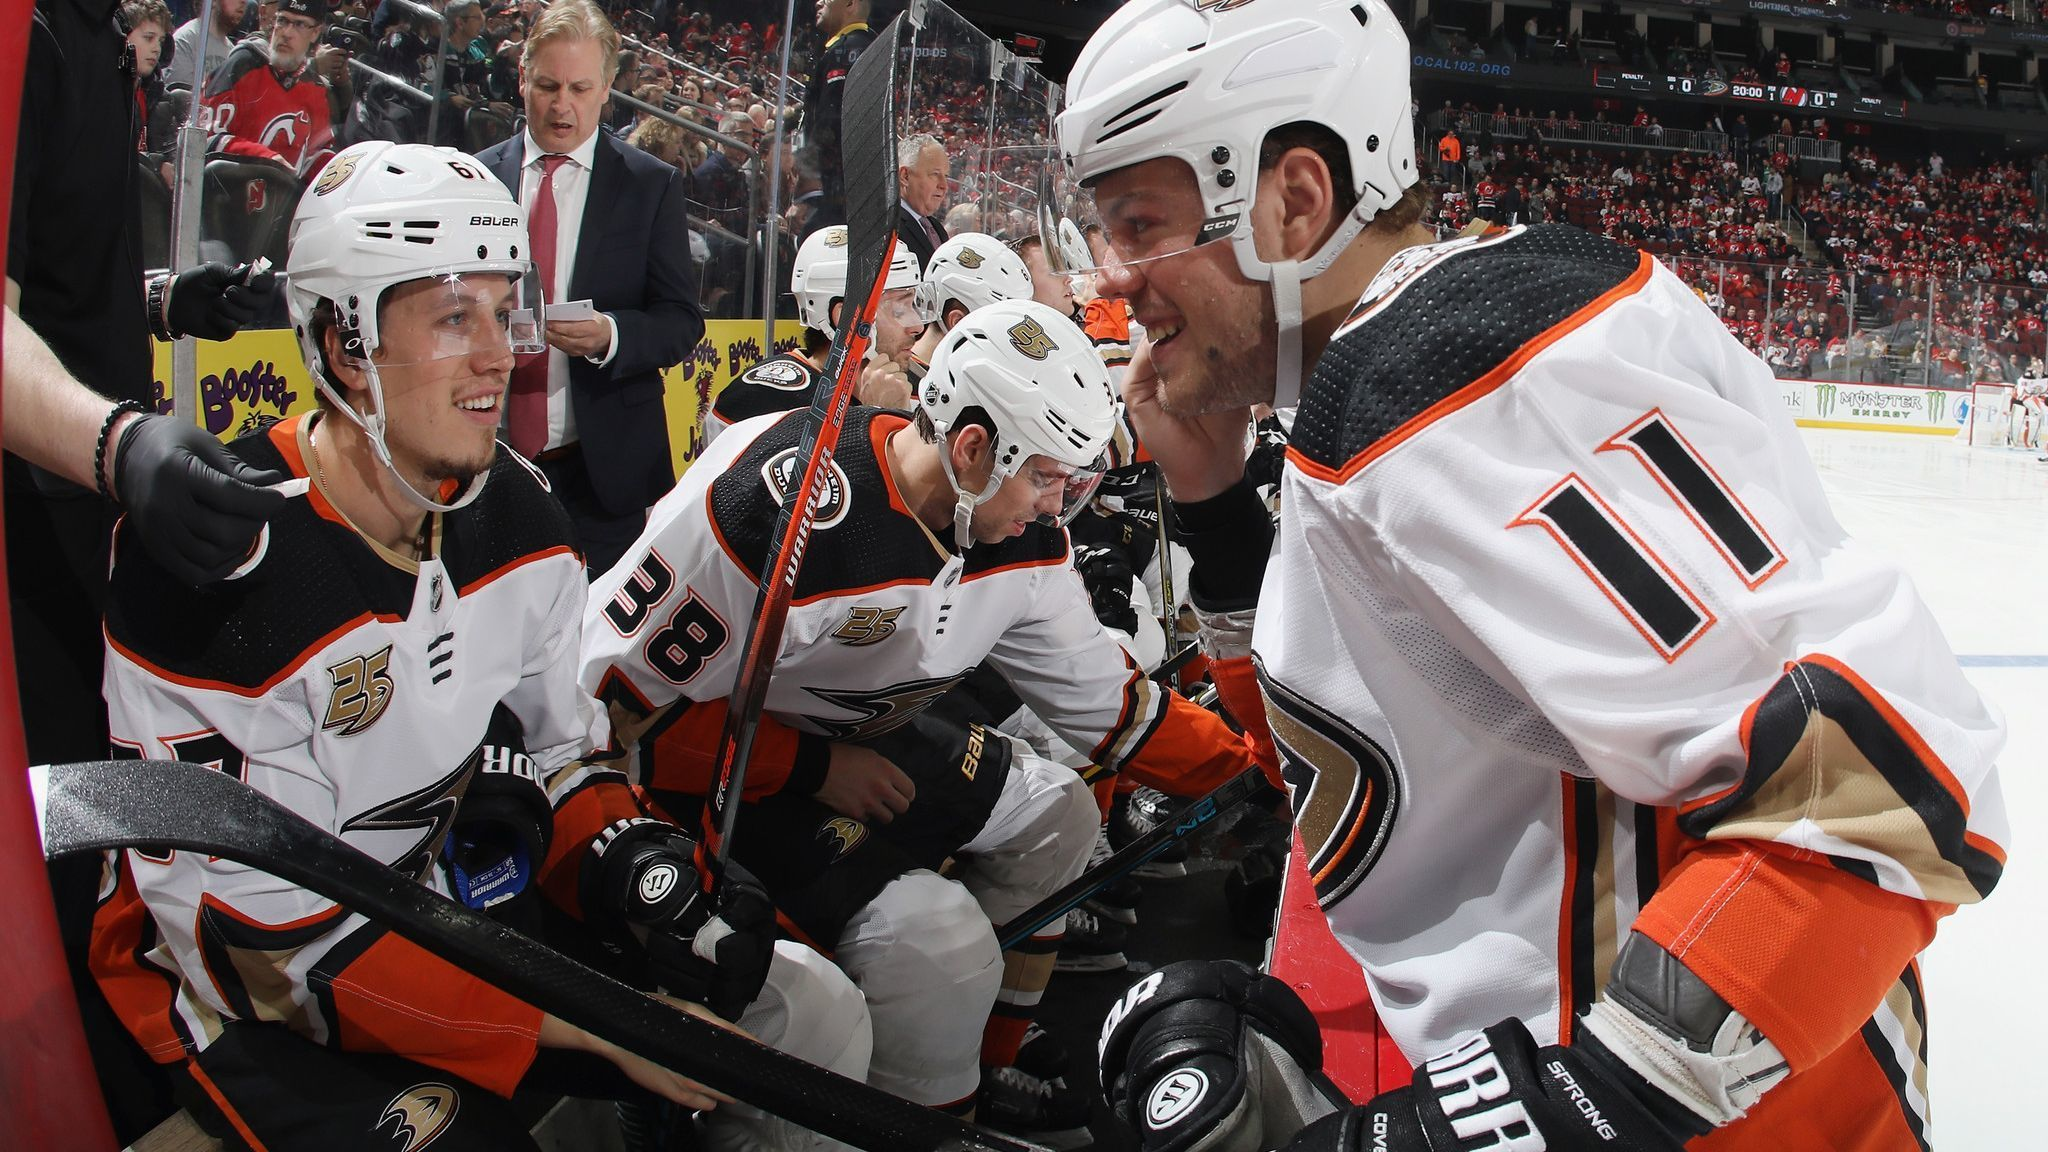 Up next for the Ducks: Wednesday vs. St. Louis